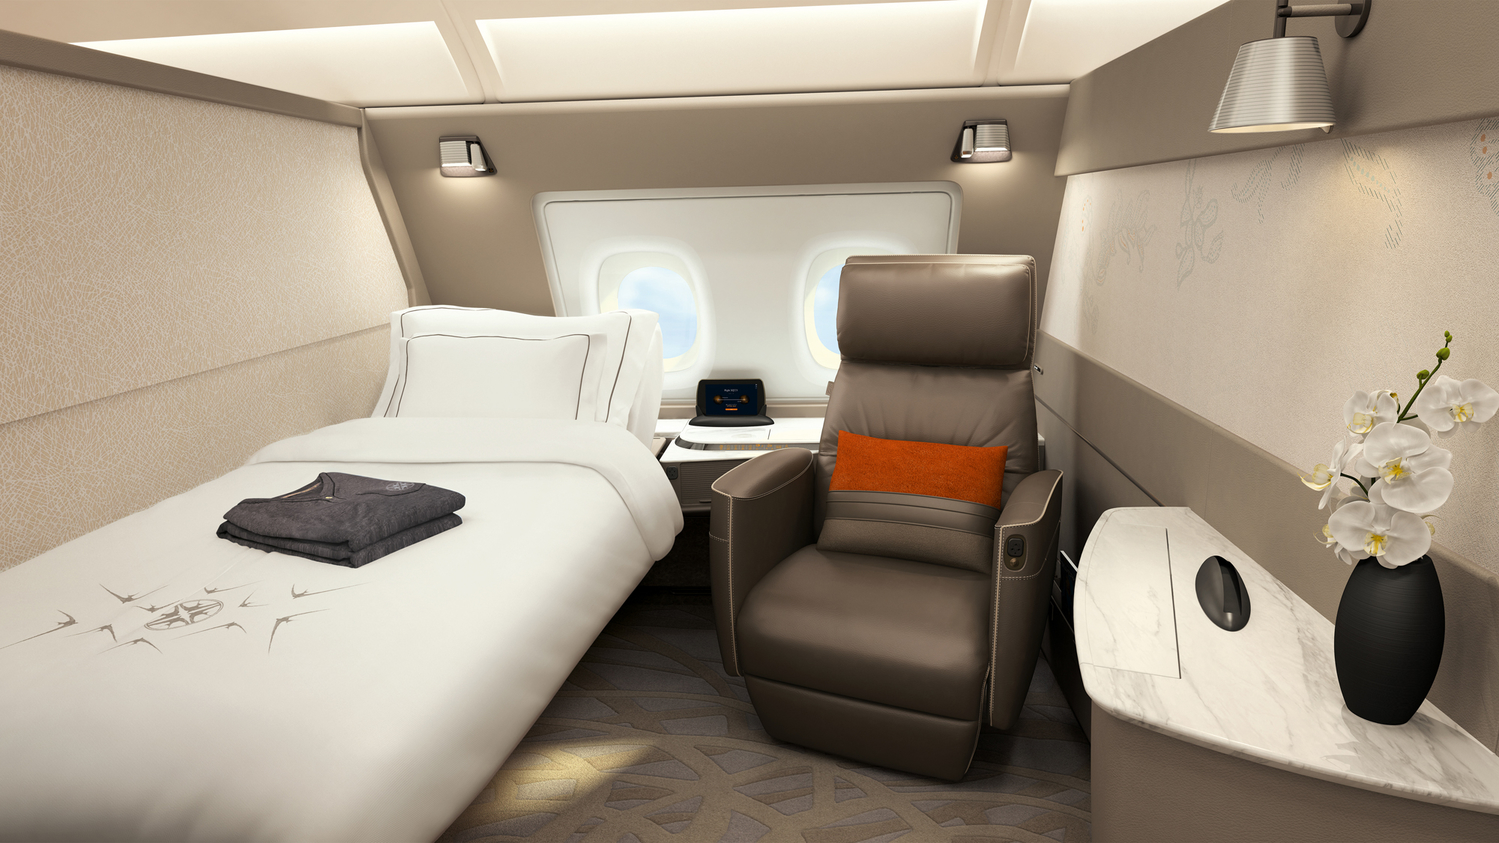 """The new """"bedroom"""" suite includes a Poltrona Frau leather chair, oh and did we mention a BED!?"""